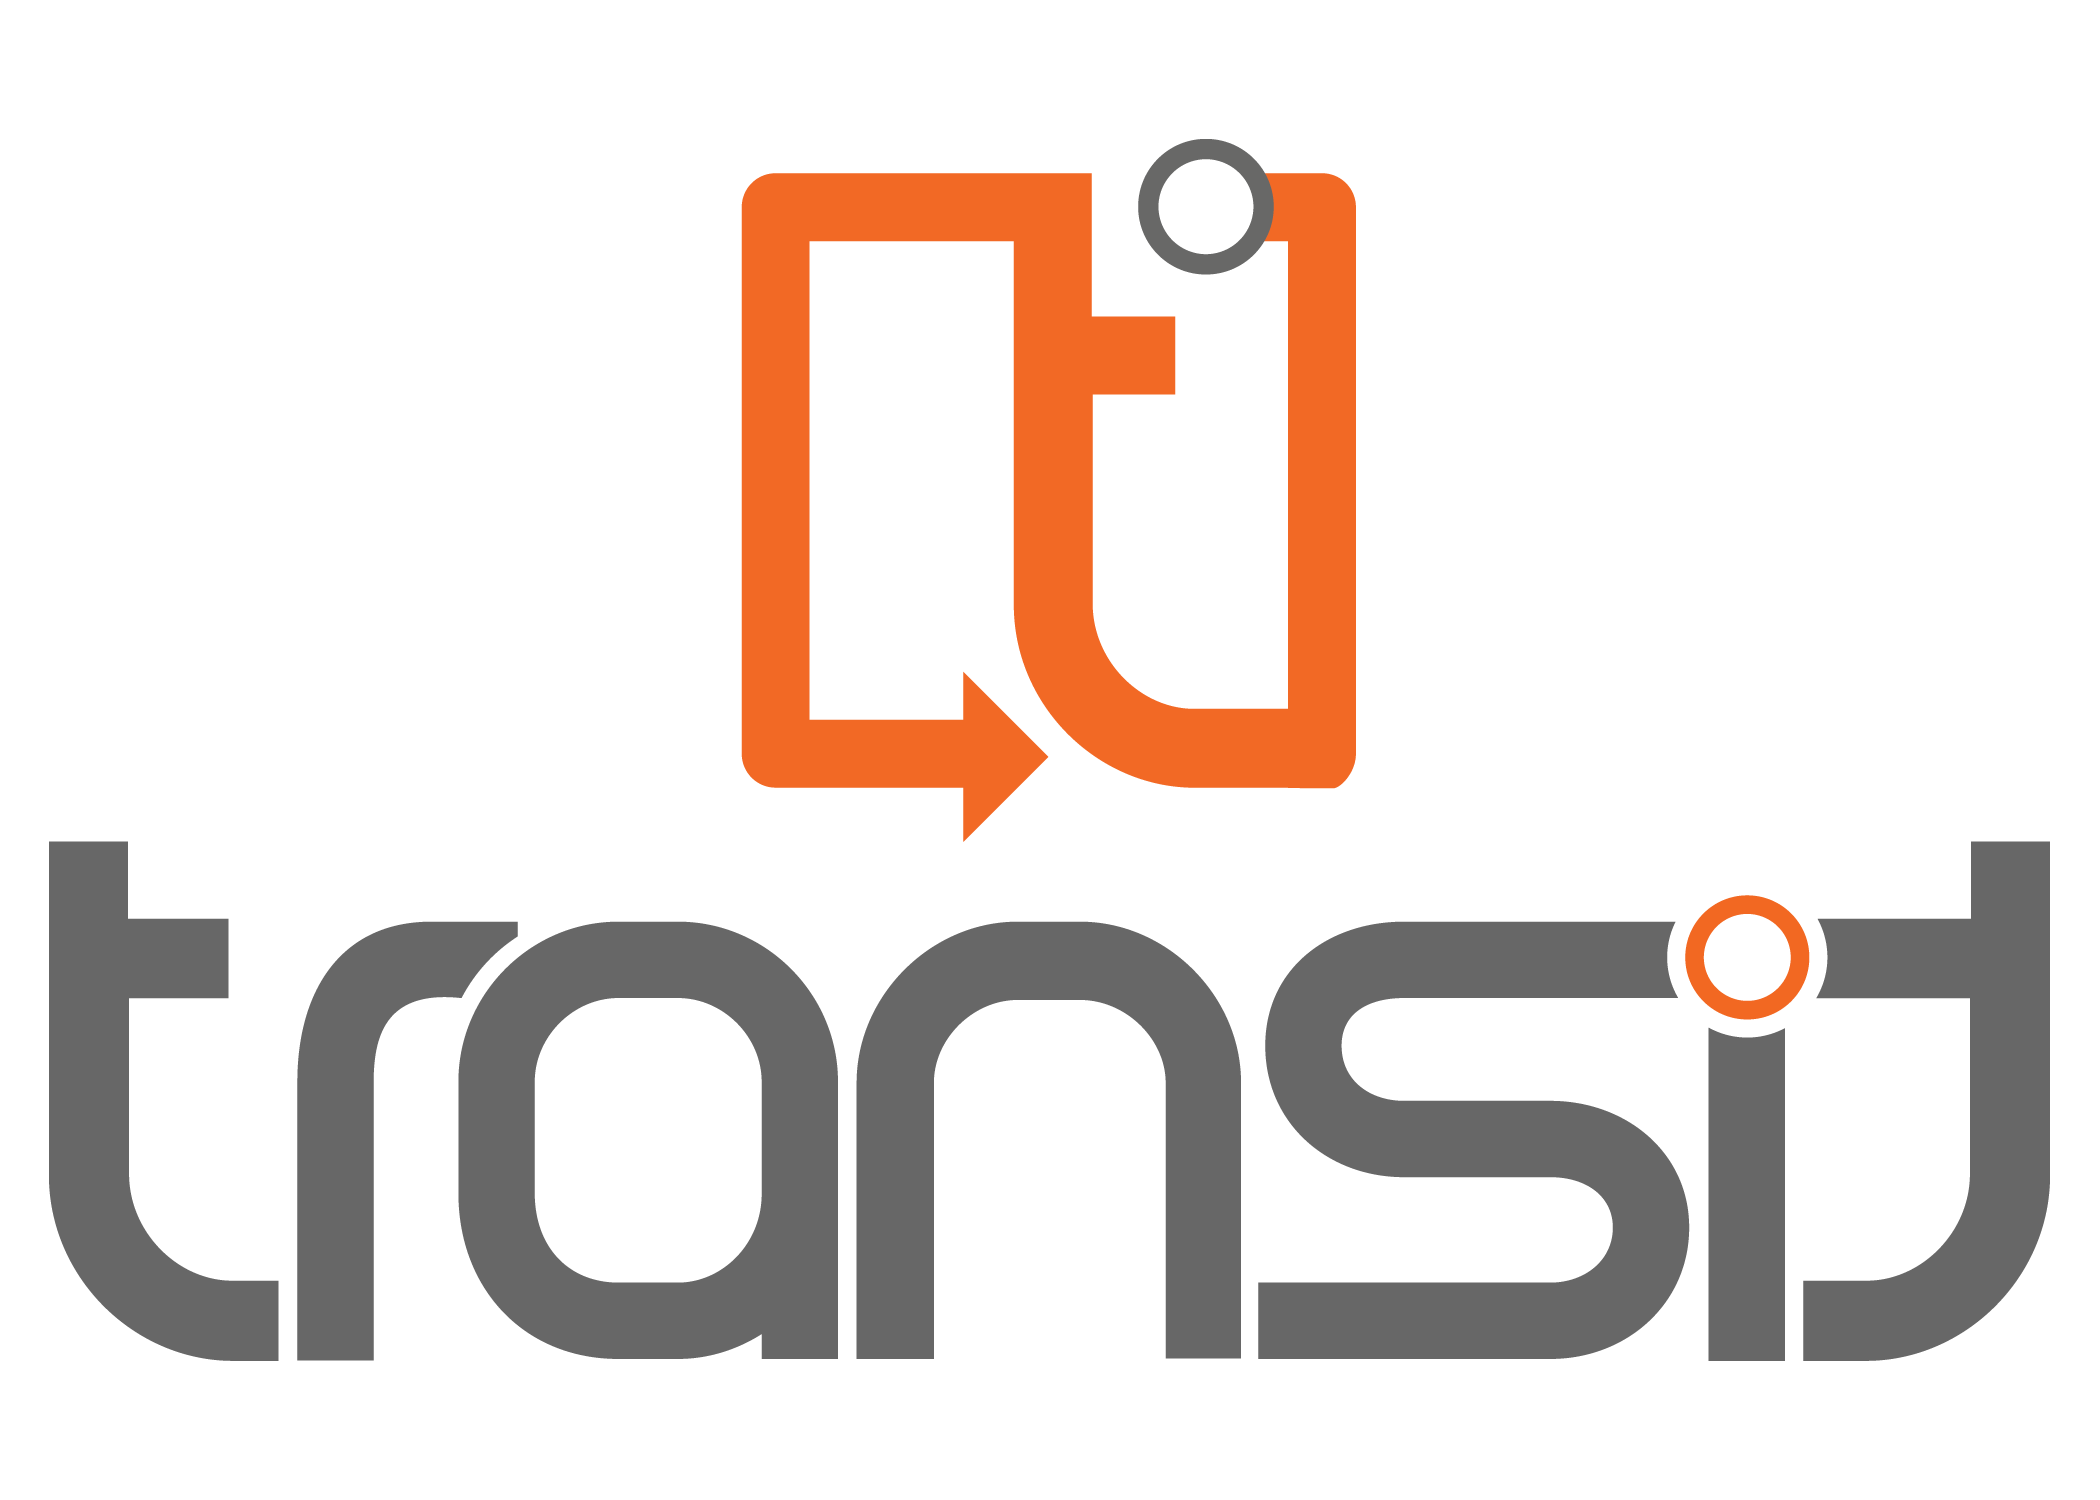 TransitLogo.png